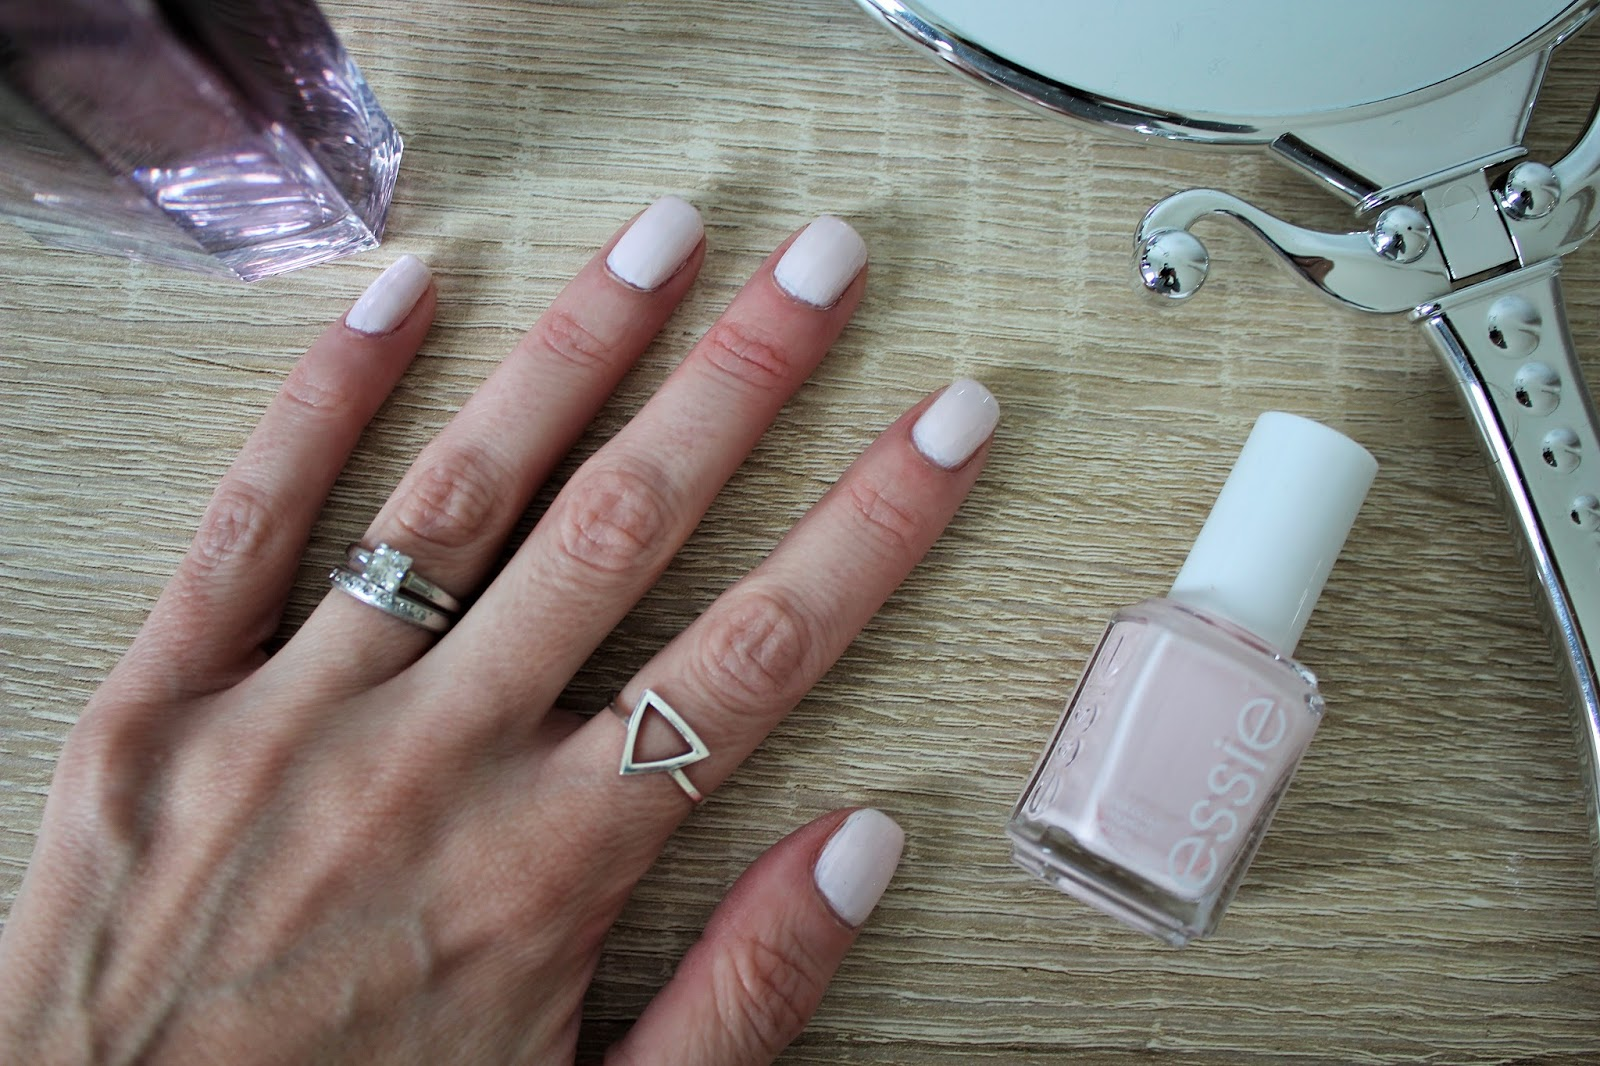 Essie Nail Varnish in Peak Show - Winter 2015/2016 Collection